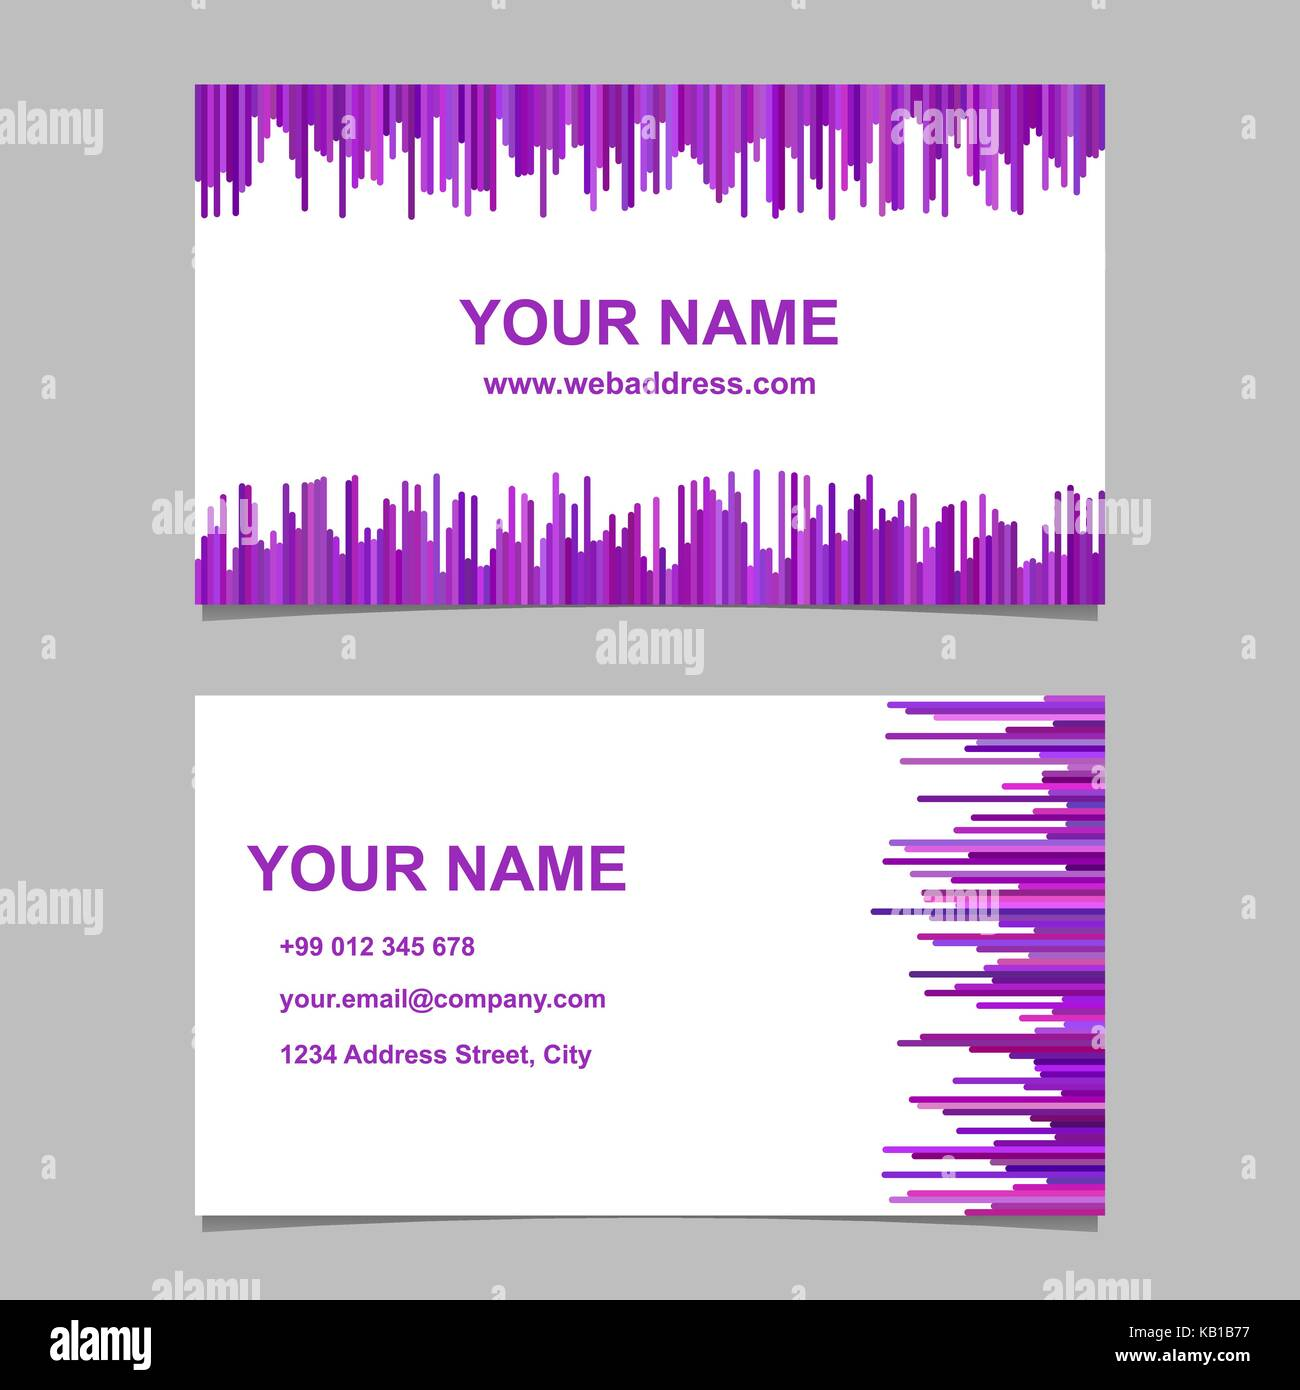 Business card template design set vector name card graphic with business card template design set vector name card graphic with rounded stripes in purple tones flashek Choice Image